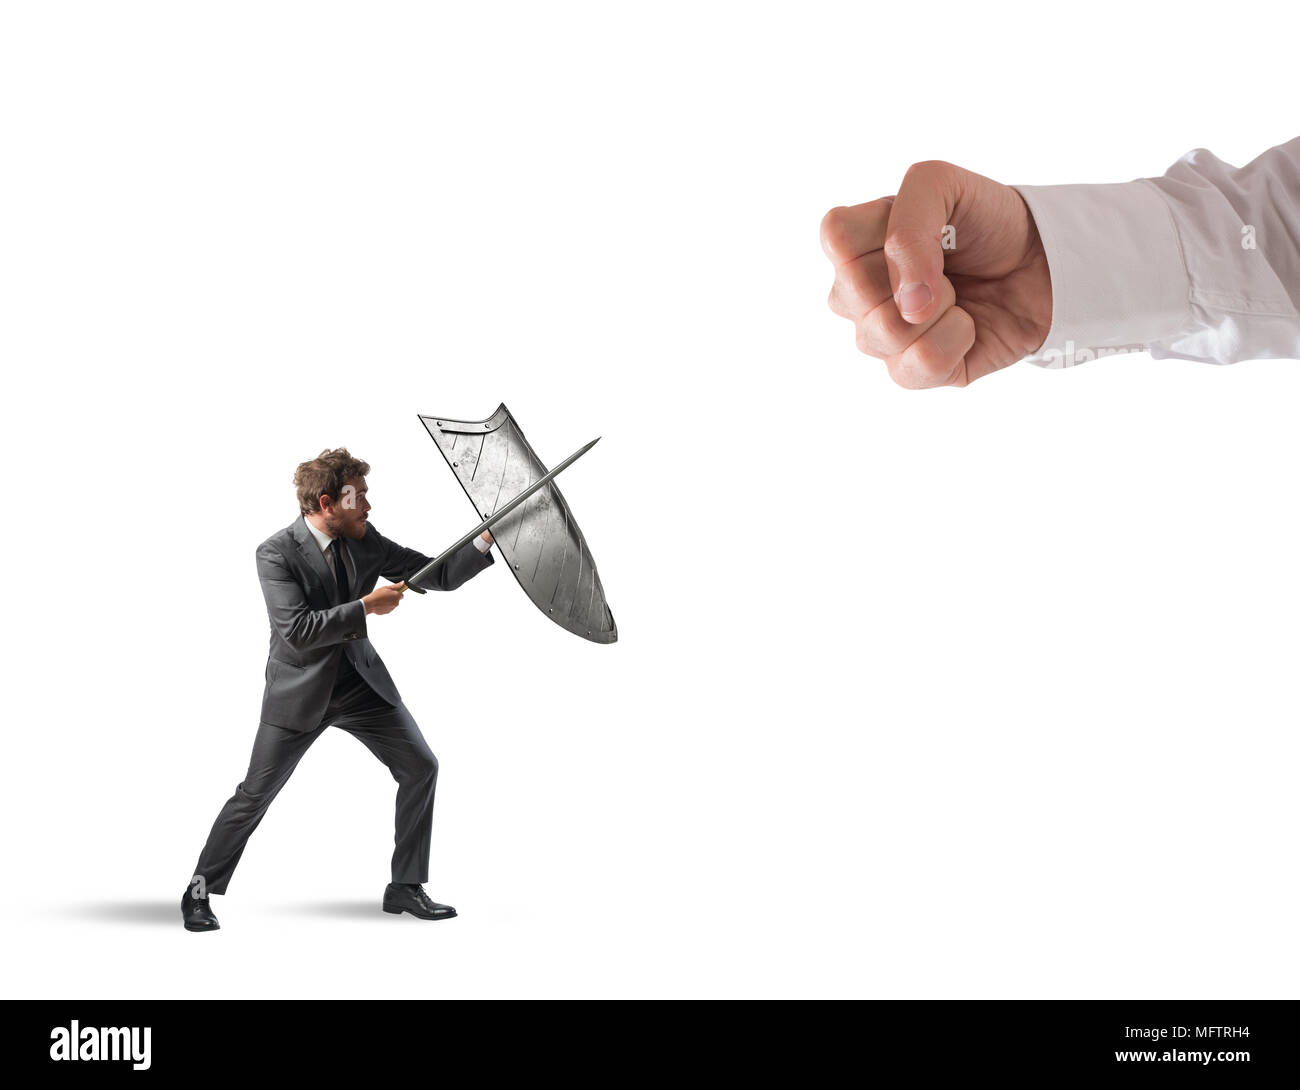 Little business man challenges big problems fighting with shield and sword - Stock Image